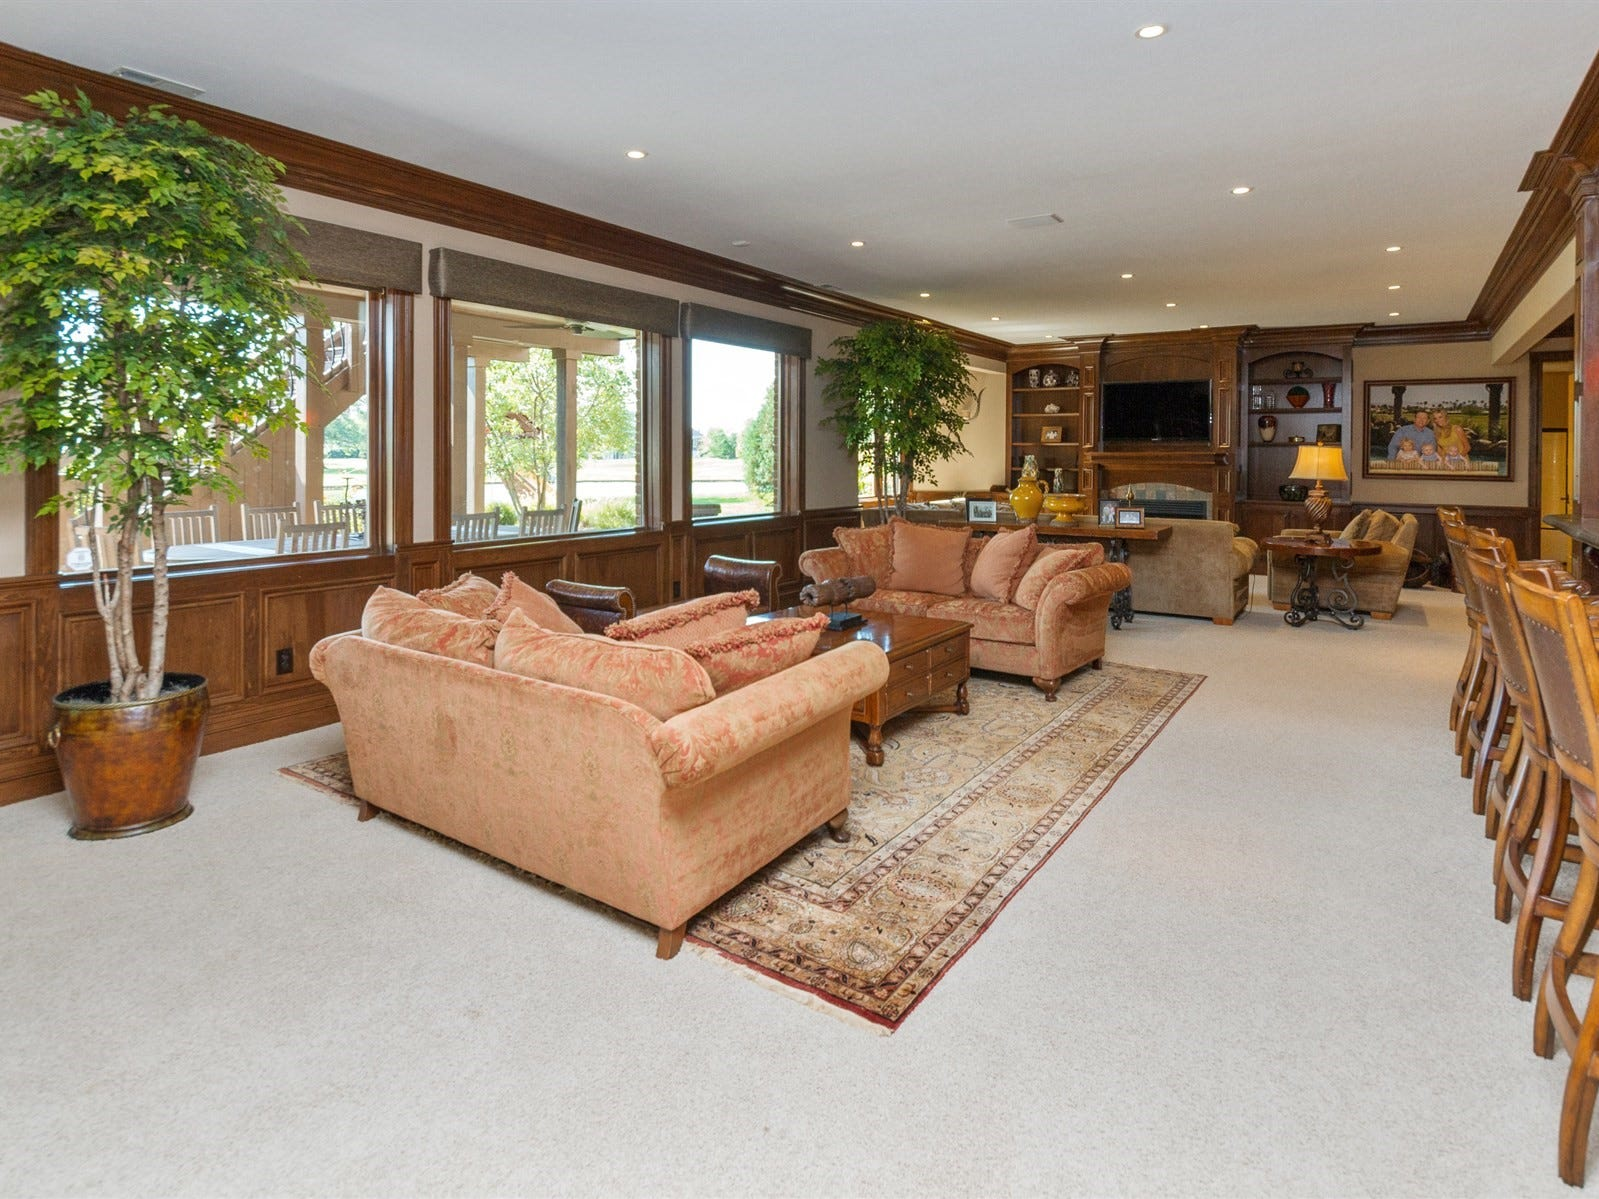 Finished basement features a theater, wet bar, billiards room and two guest rooms